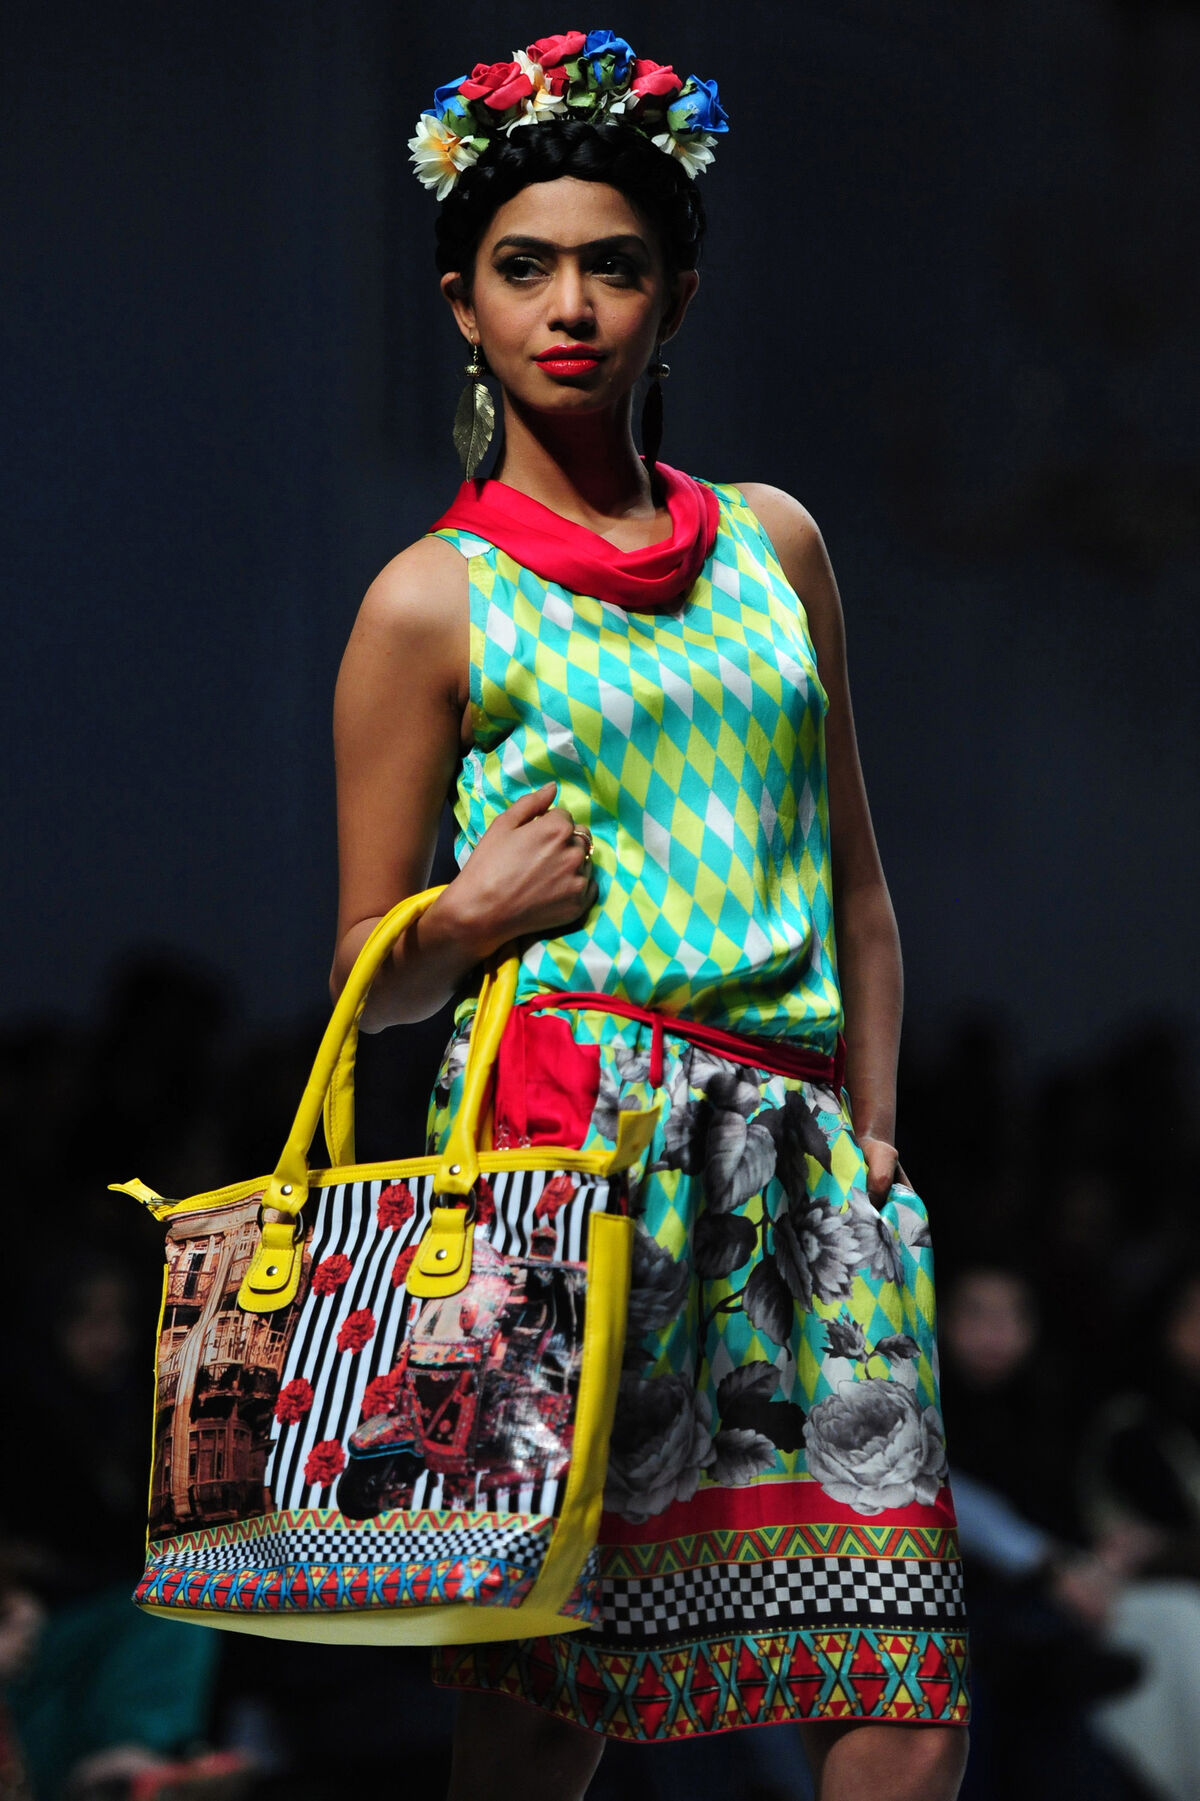 A Pakistani model presents a creation by Deepak Perwani on the second day of Fashion Pakistan Week, Karachi, 2013. Photo by Asif Hassan/AFP/Getty Images.